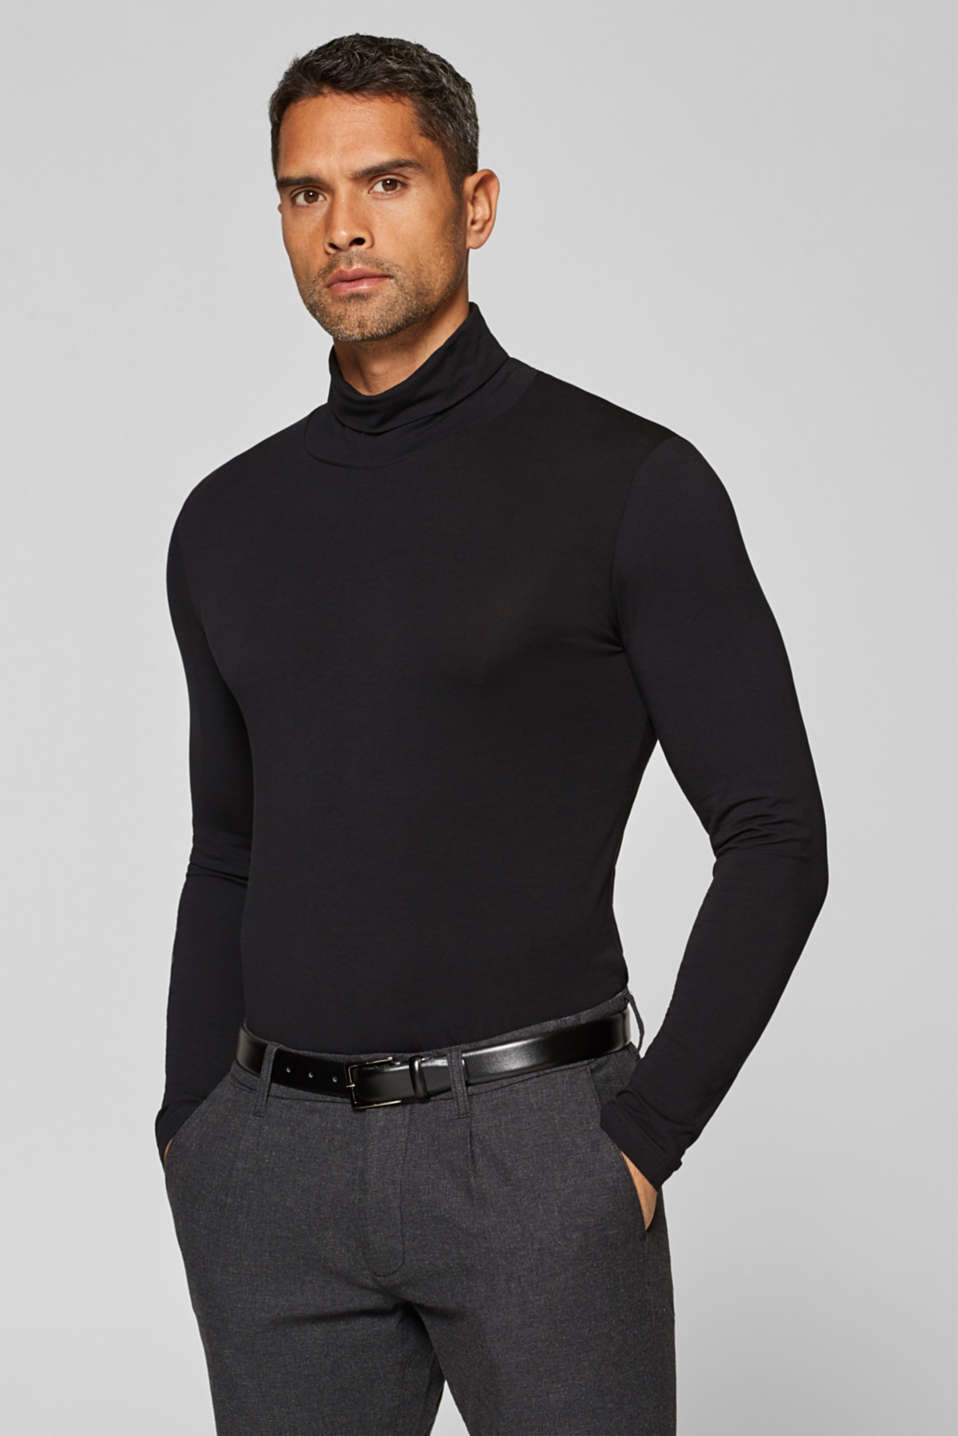 edc - Long sleeve top made of stretch cotton-jersey